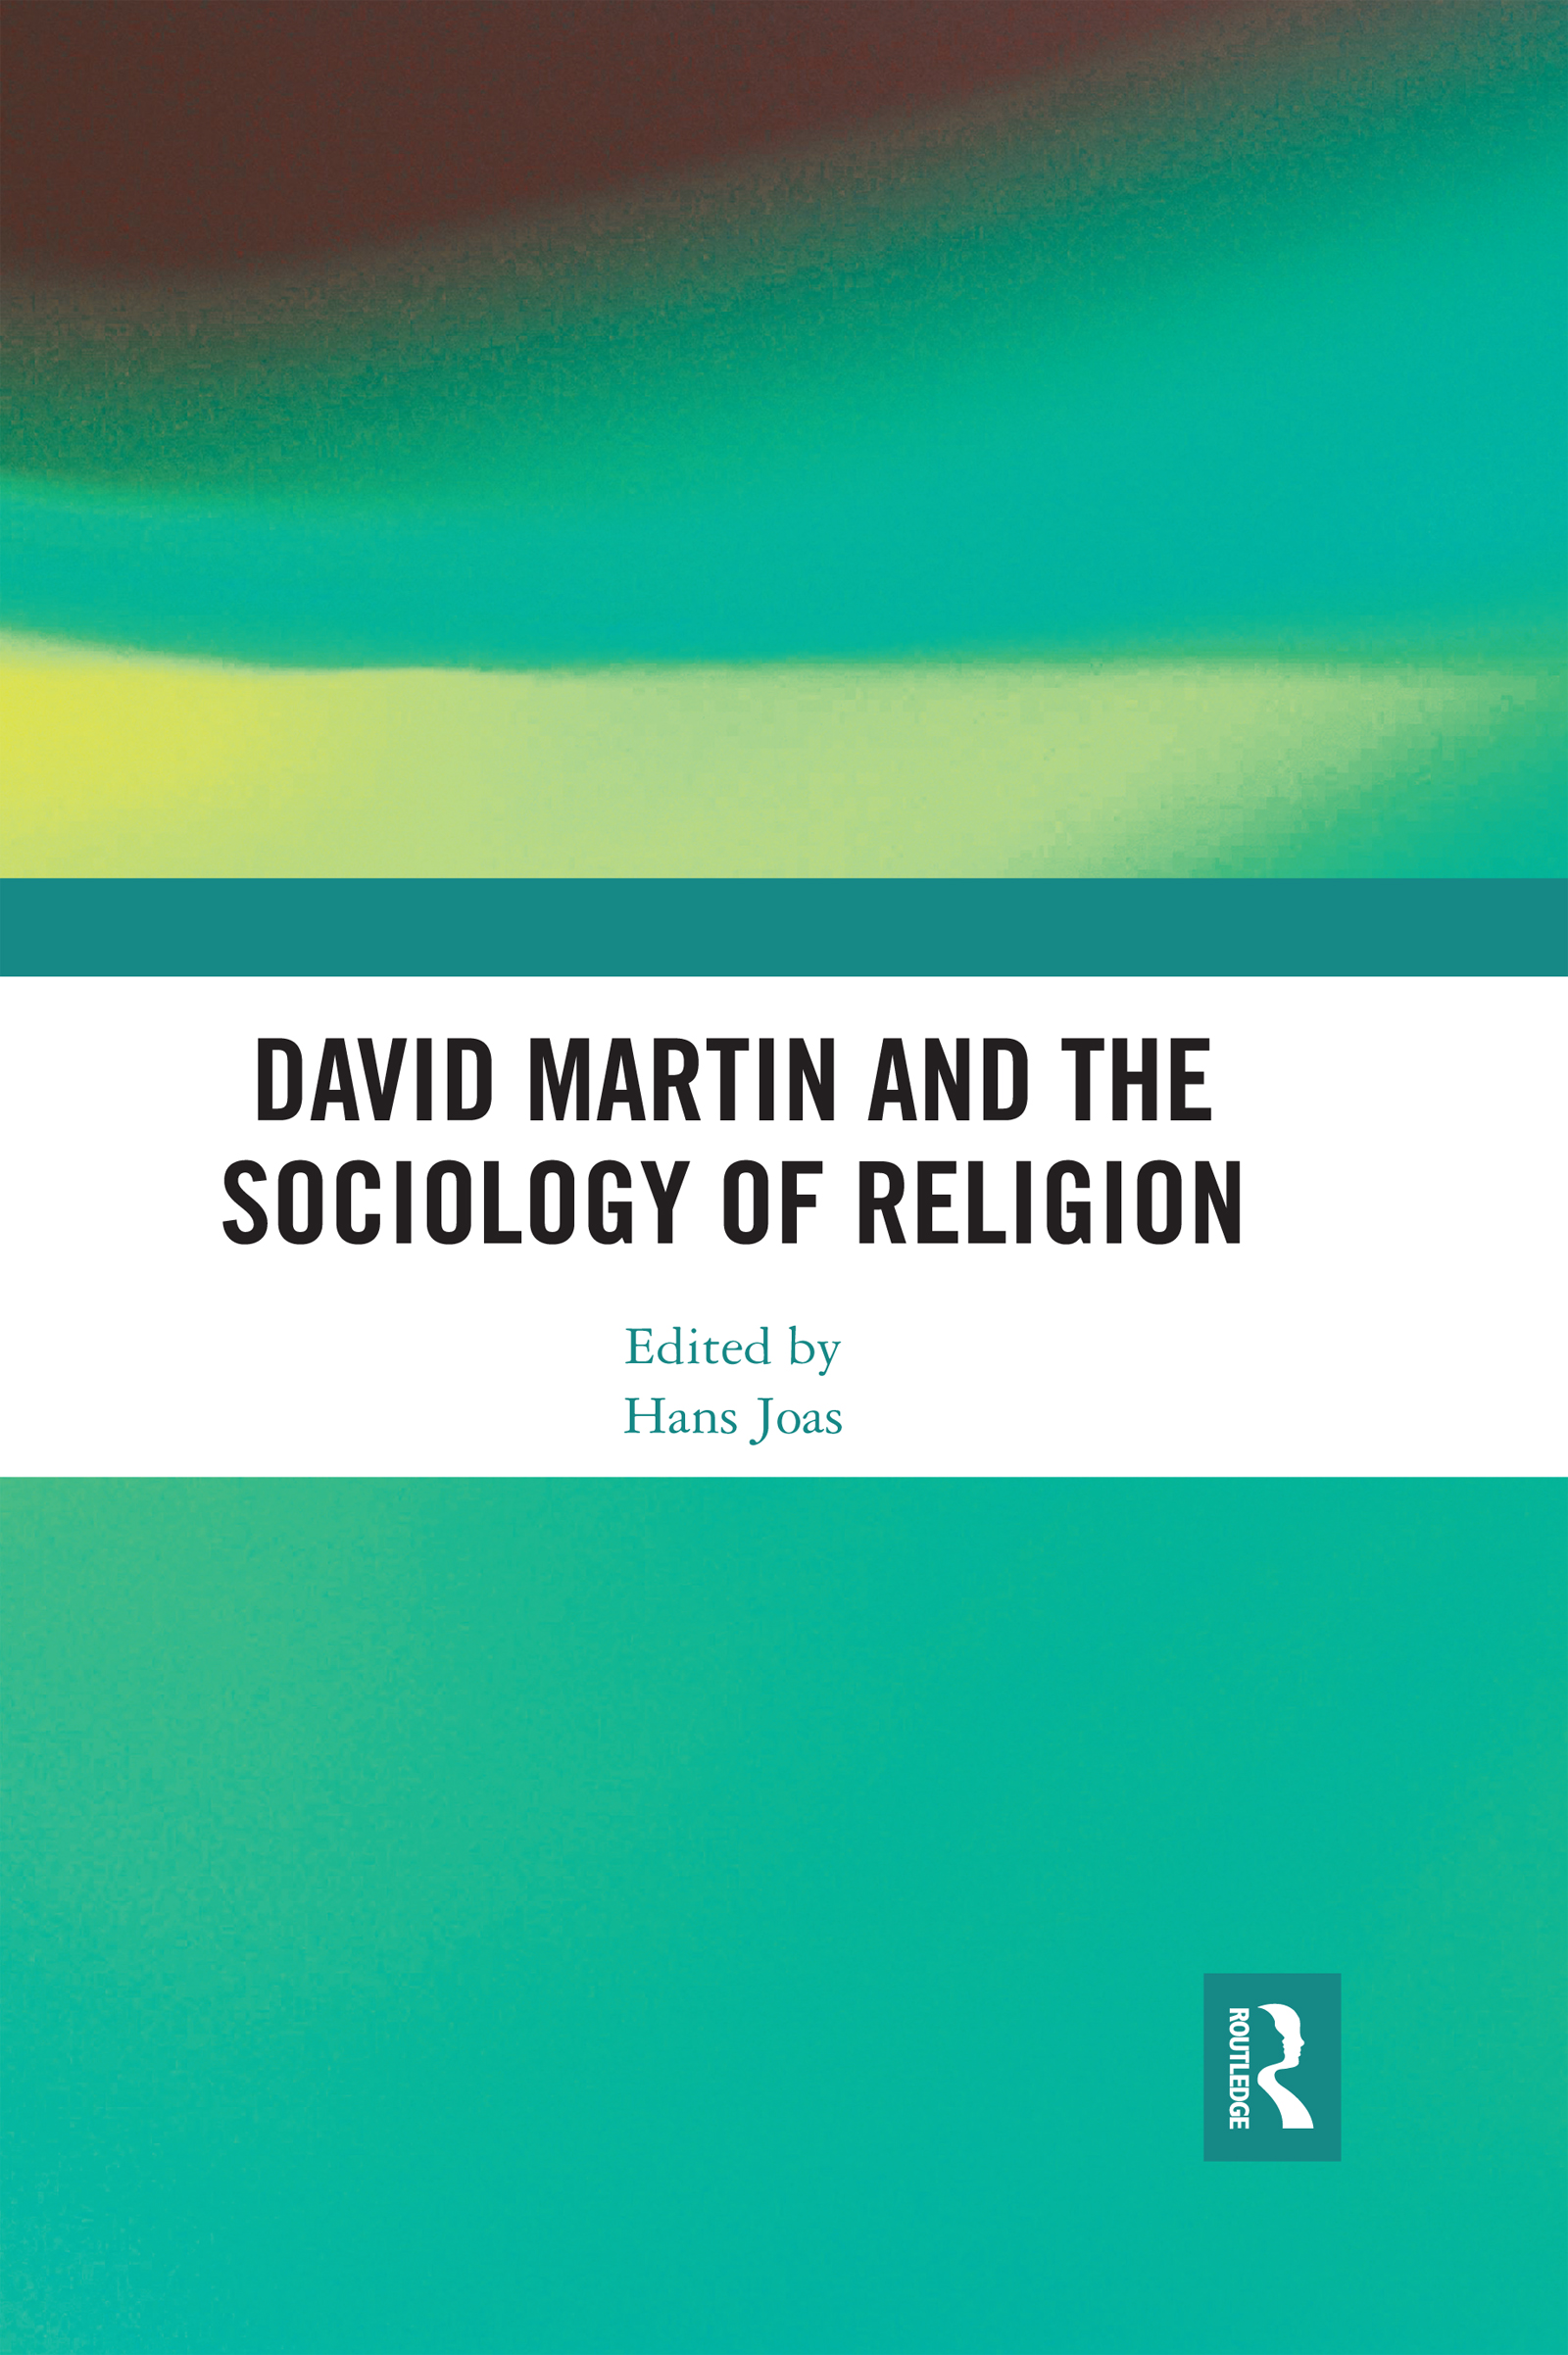 David Martin and the Sociology of Religion